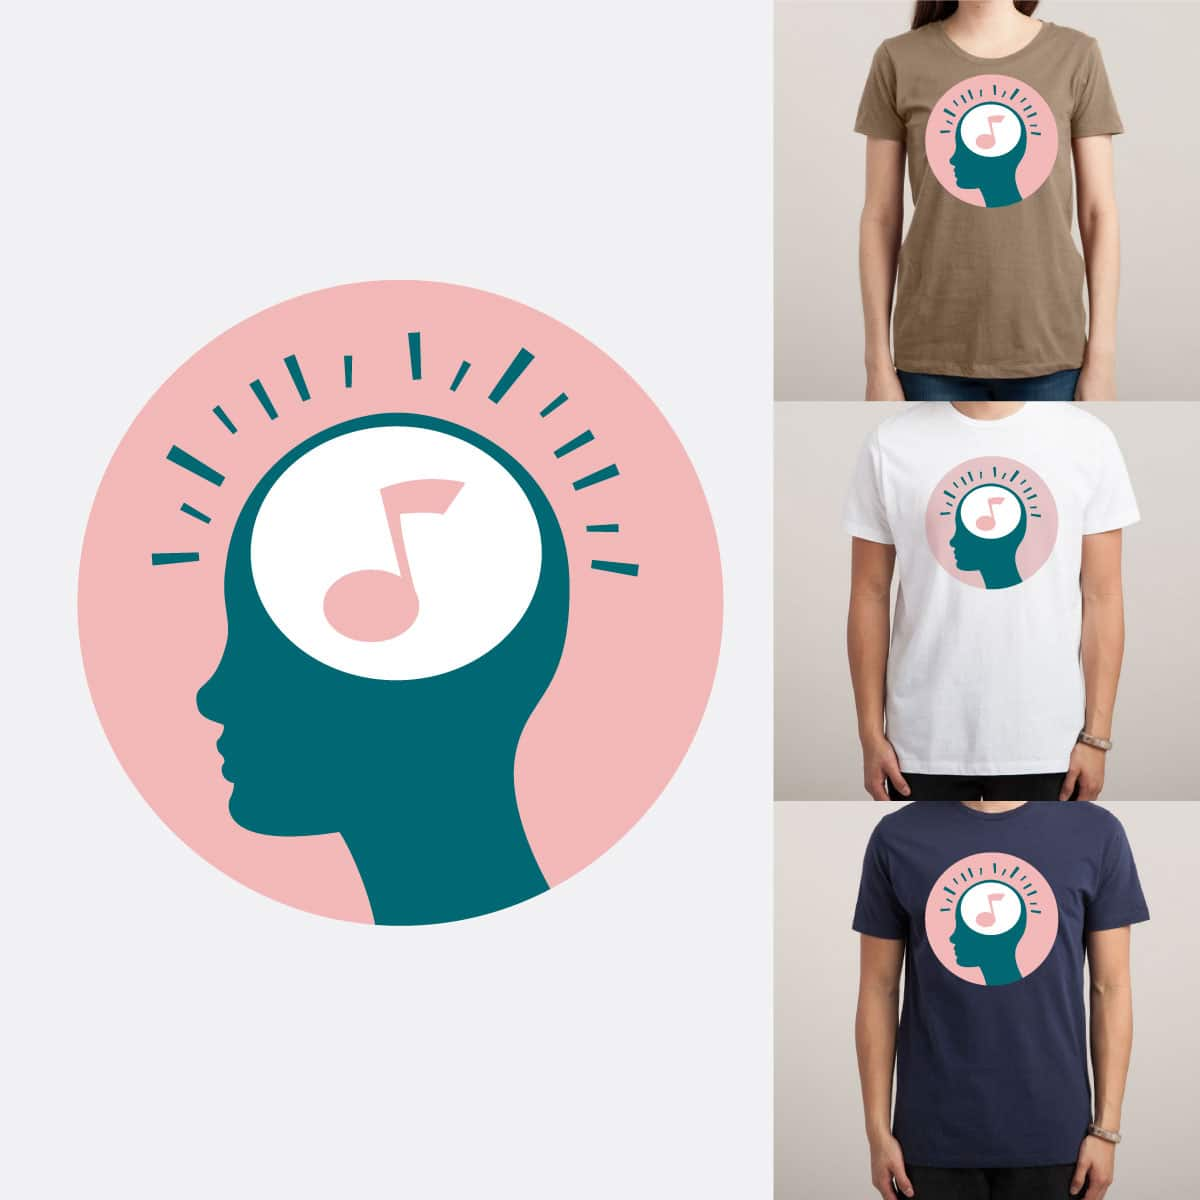 Music in my mind by Alekksall on Threadless